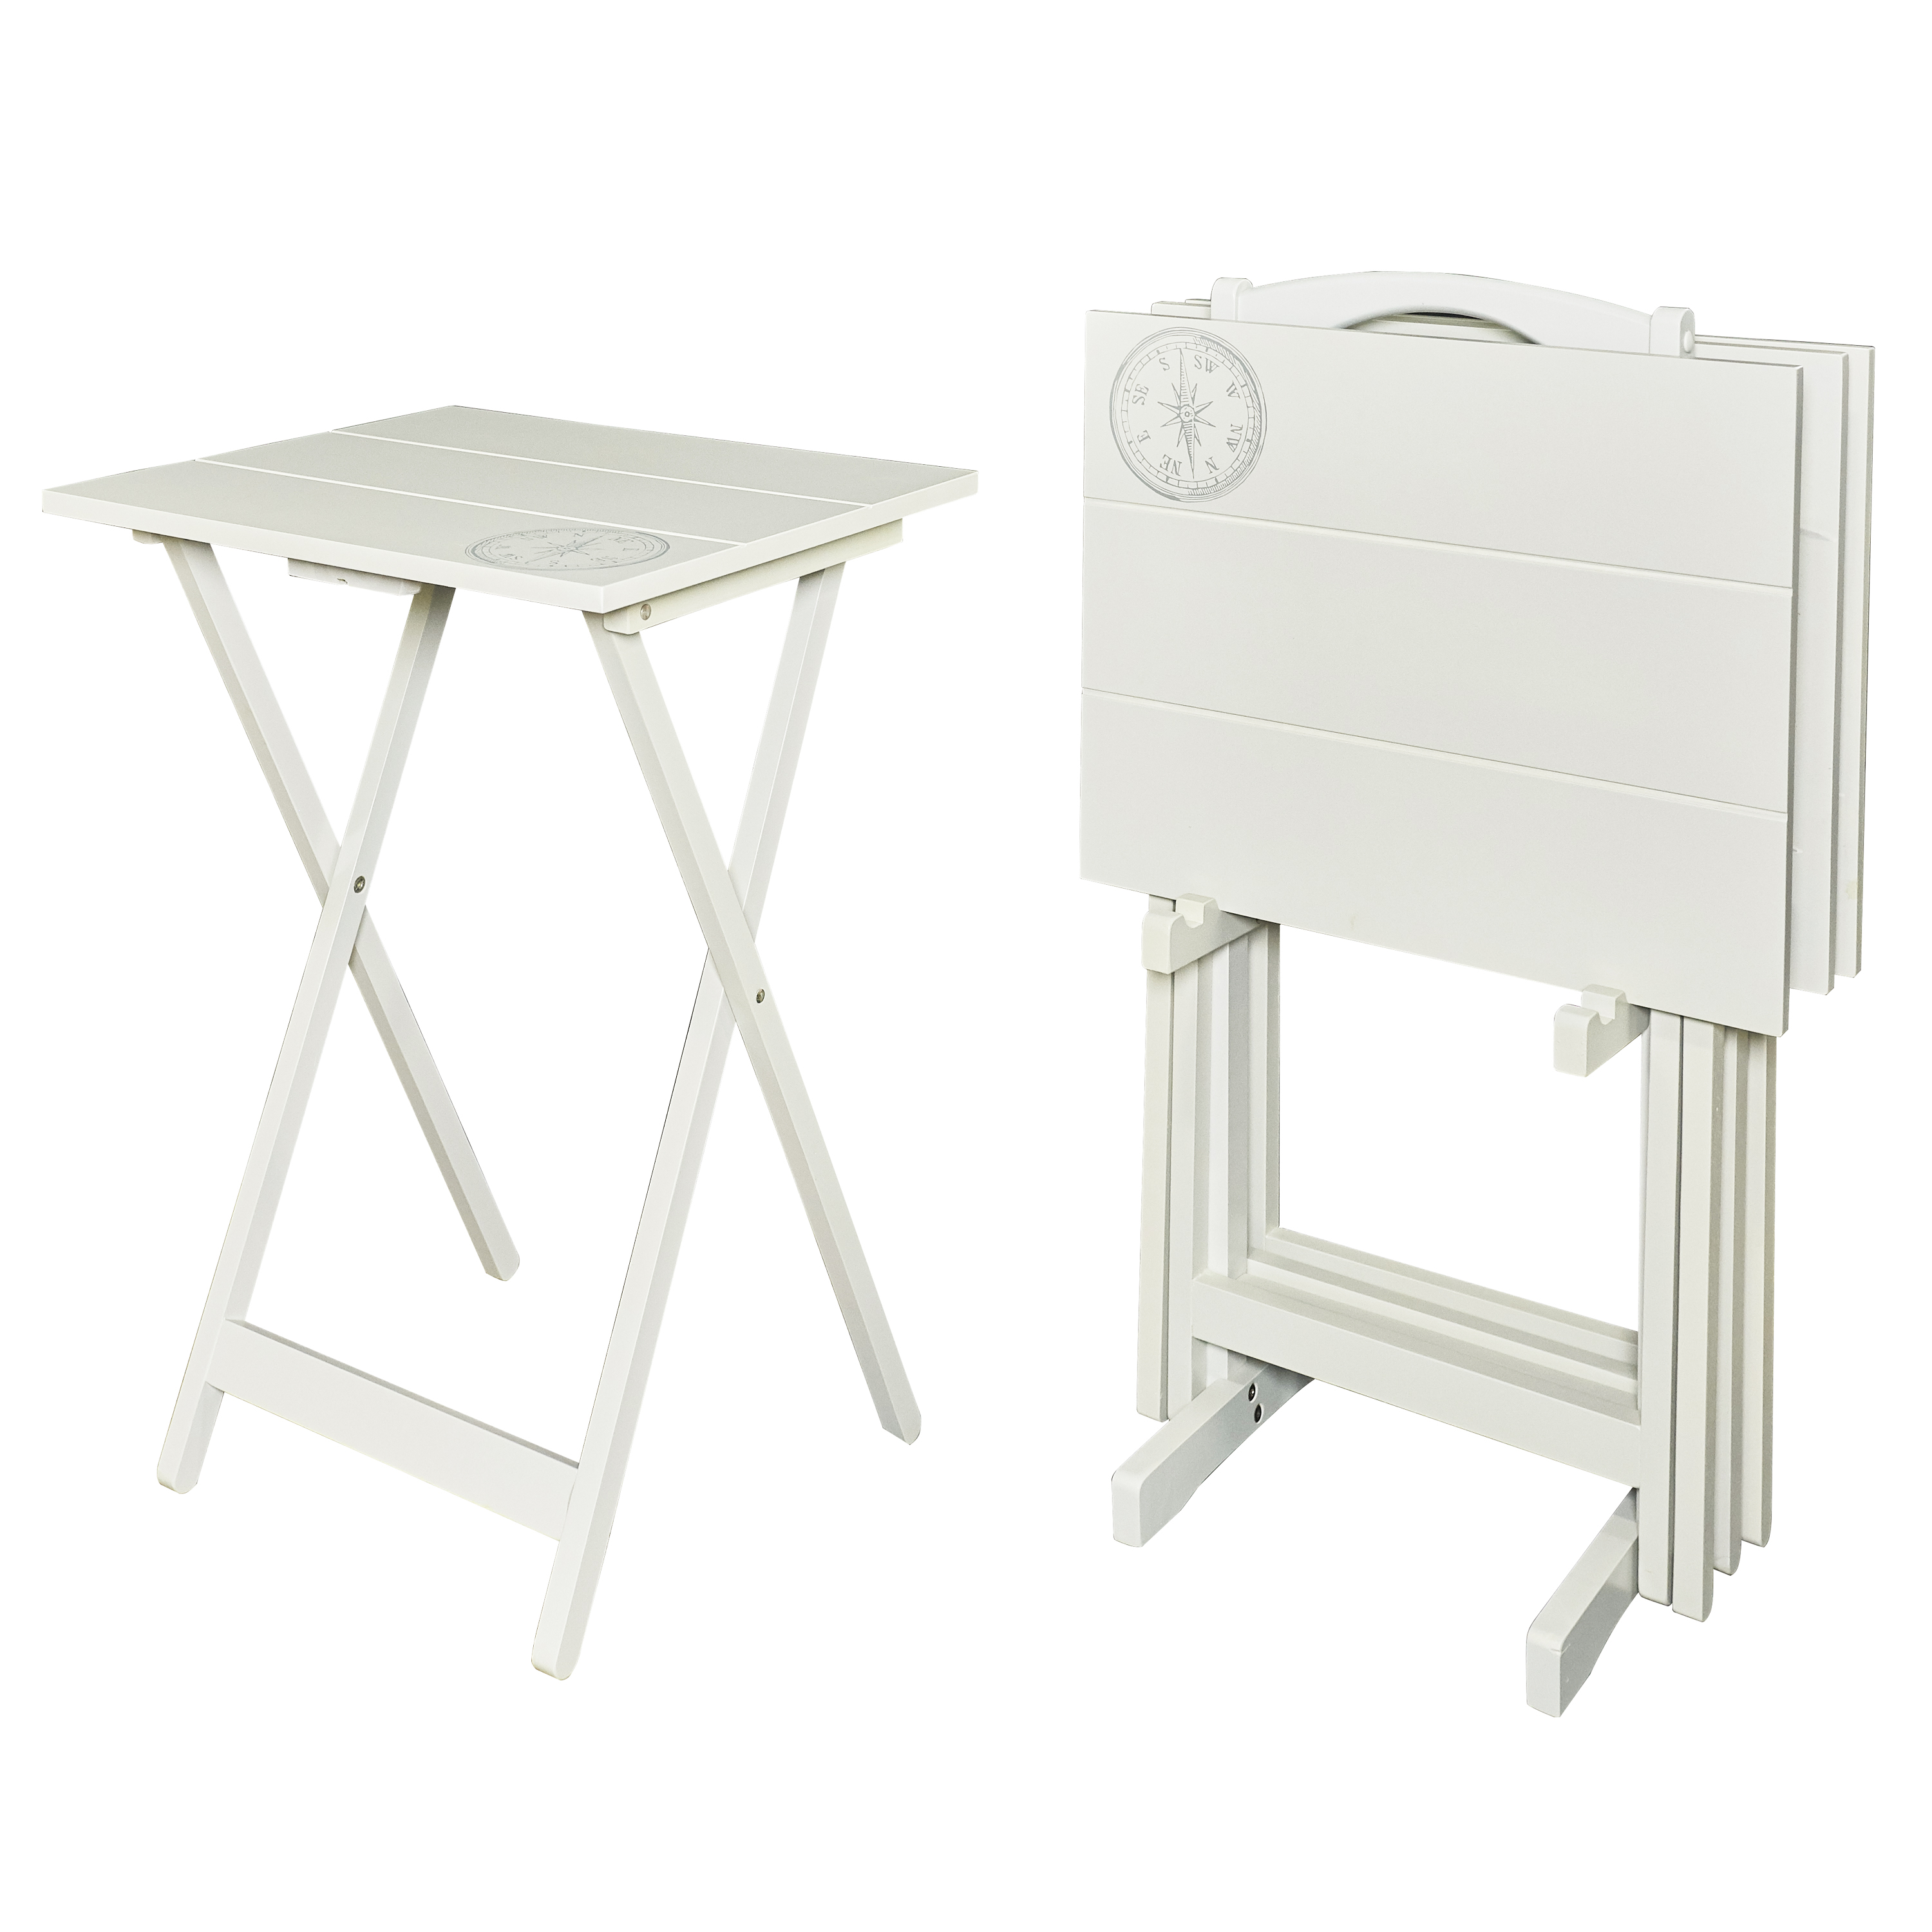 Riverbay Furniture 5 Piece Tray Table Set in White and Black